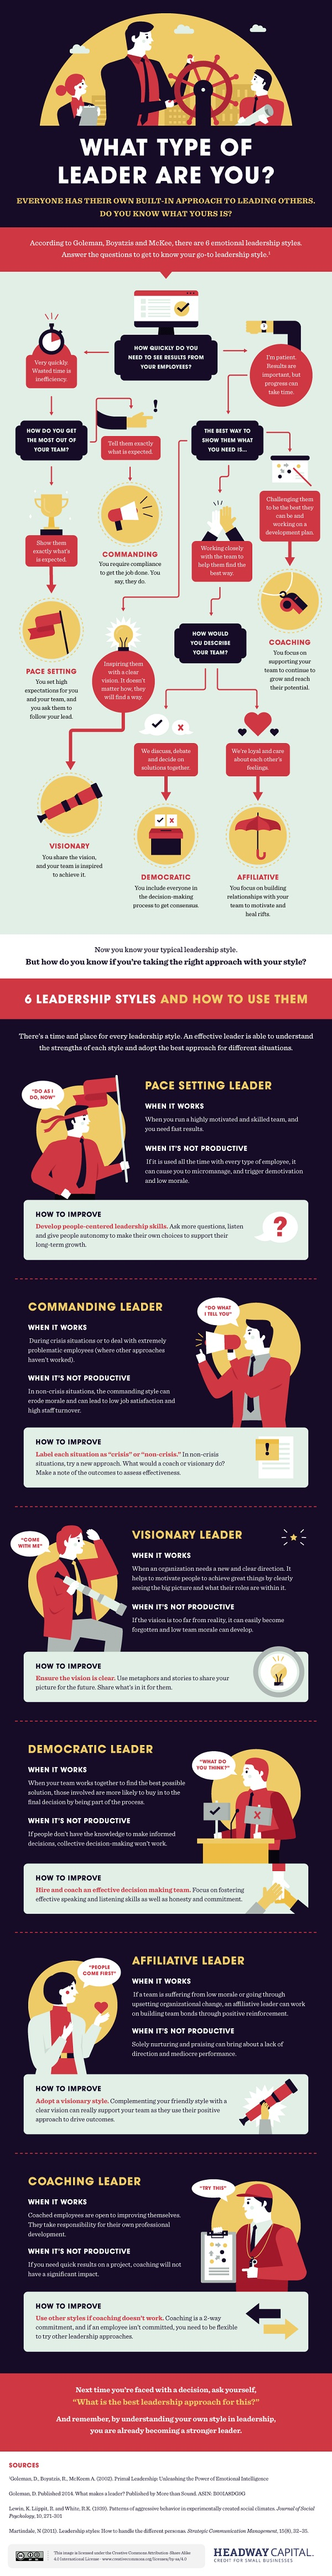 Flowchart: What Type Of Leader Are You?